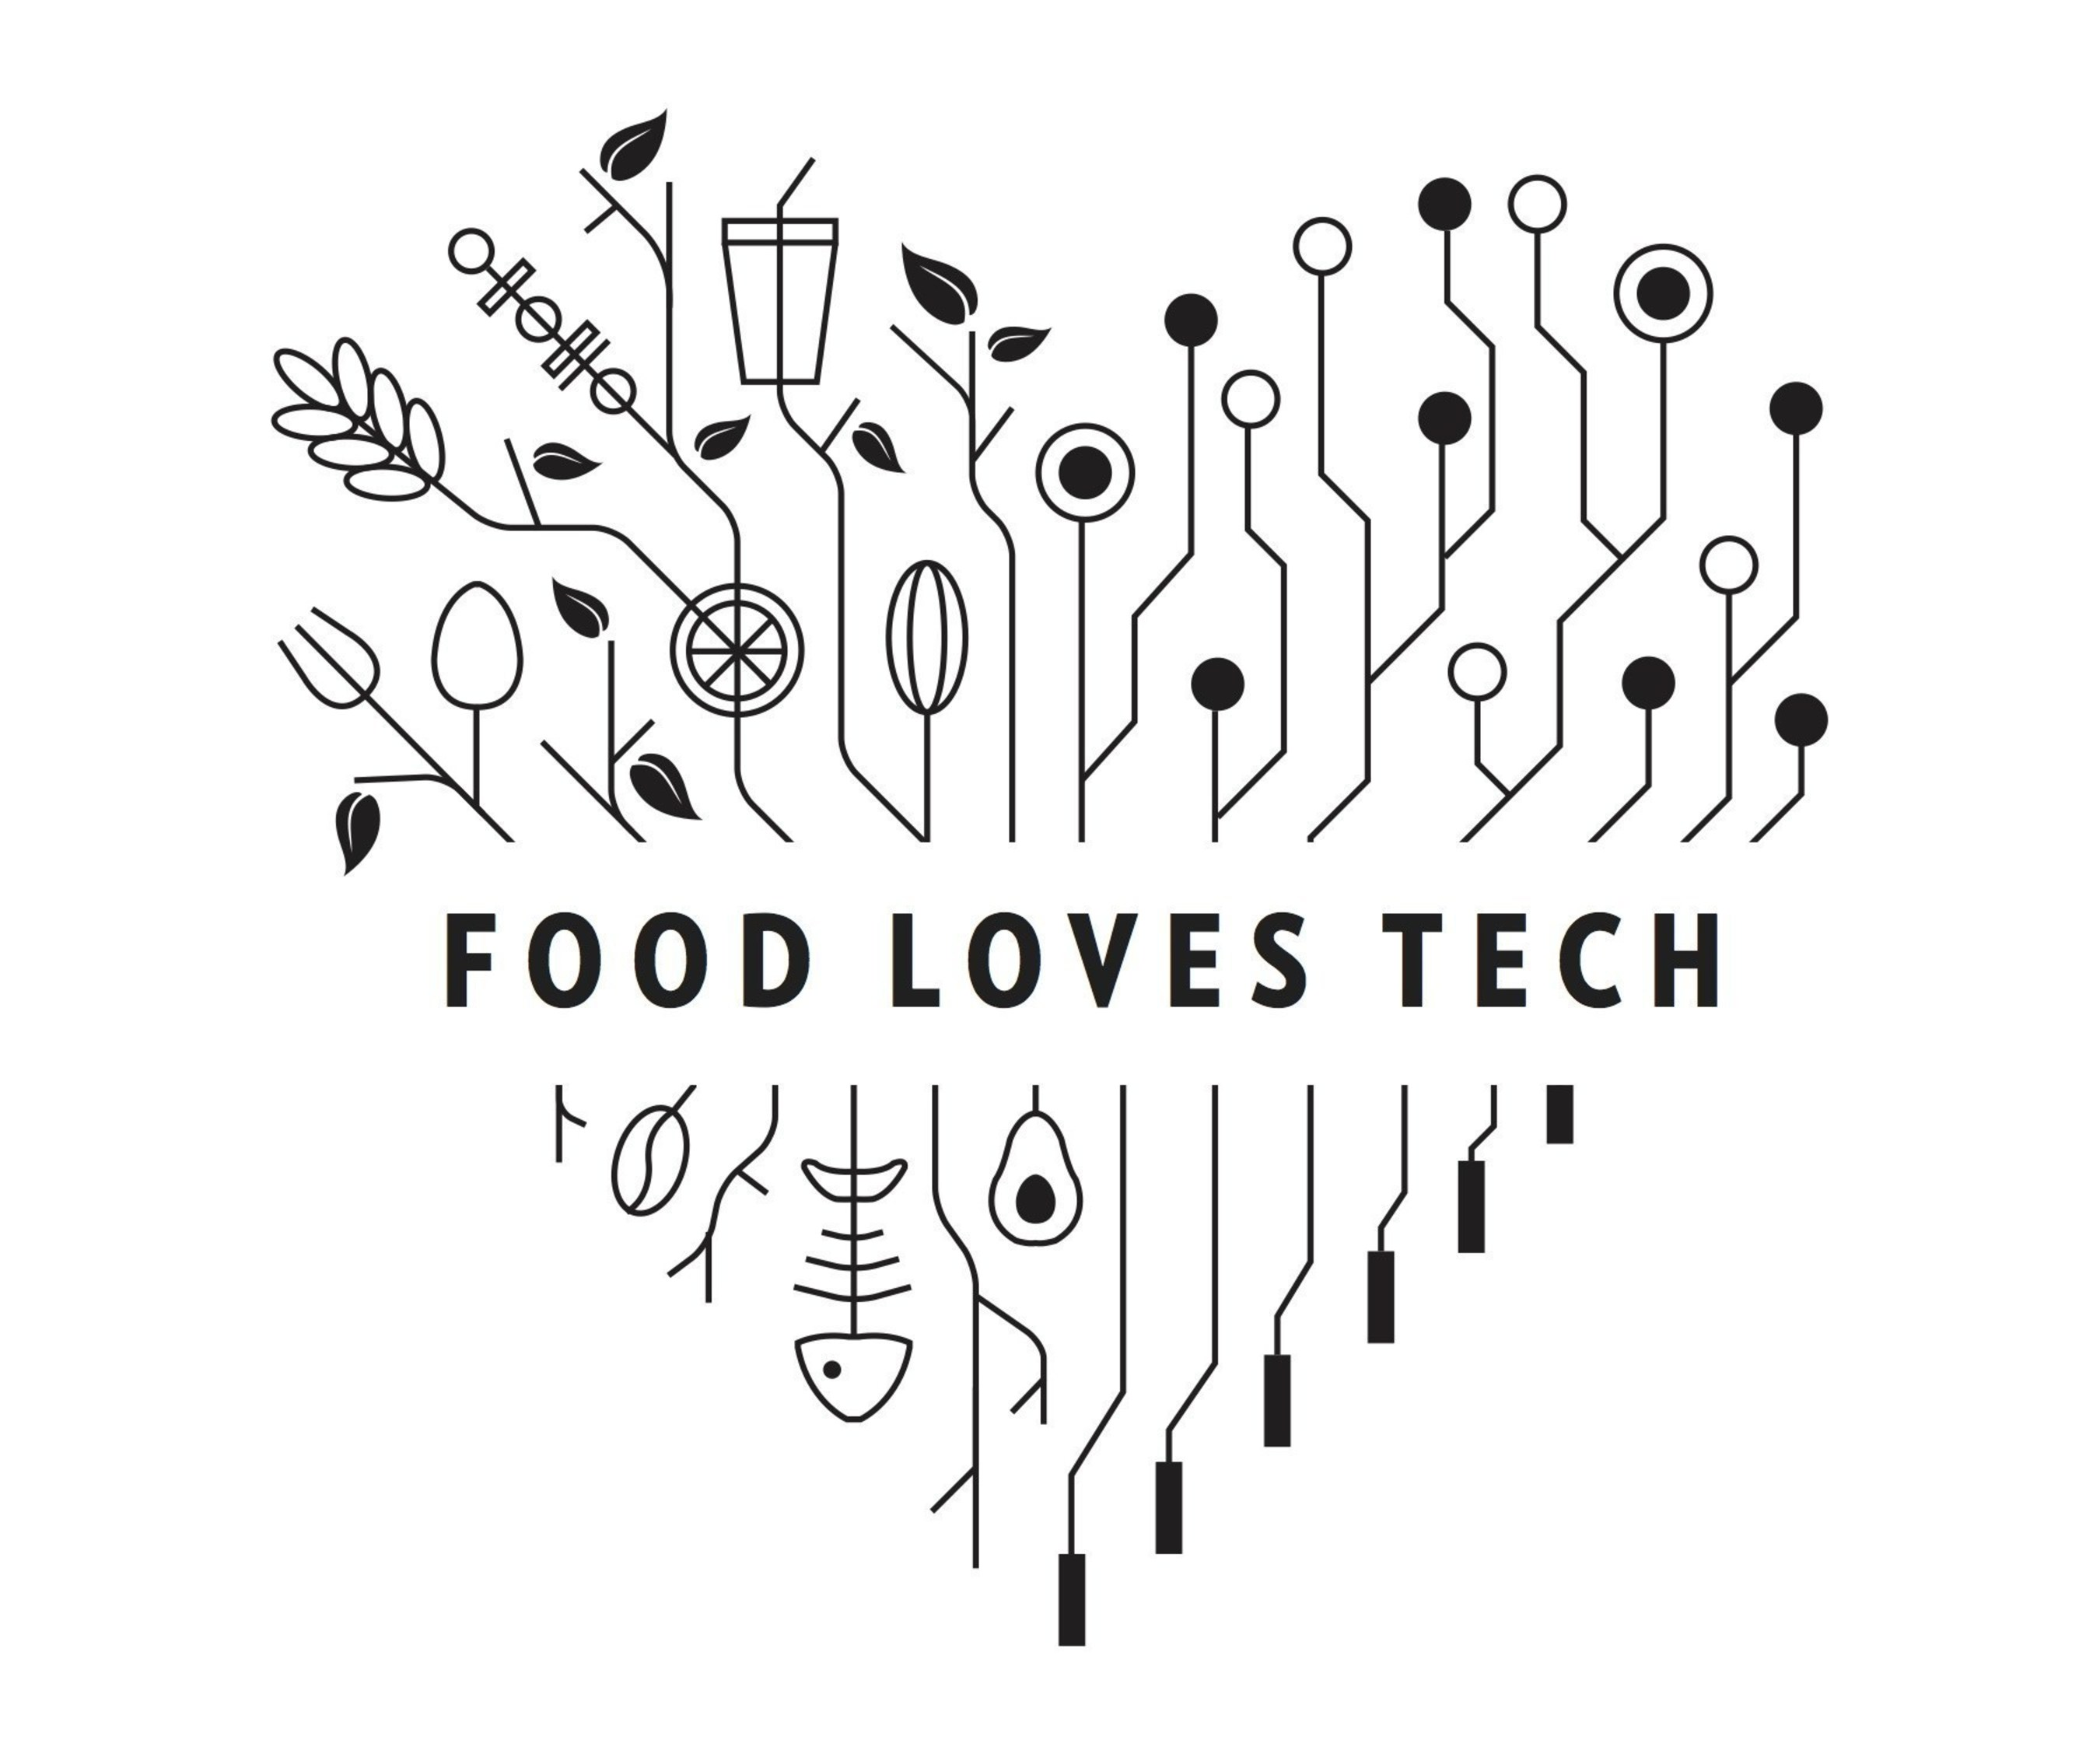 Food Loves Tech presented by Edible and VaynerMedia